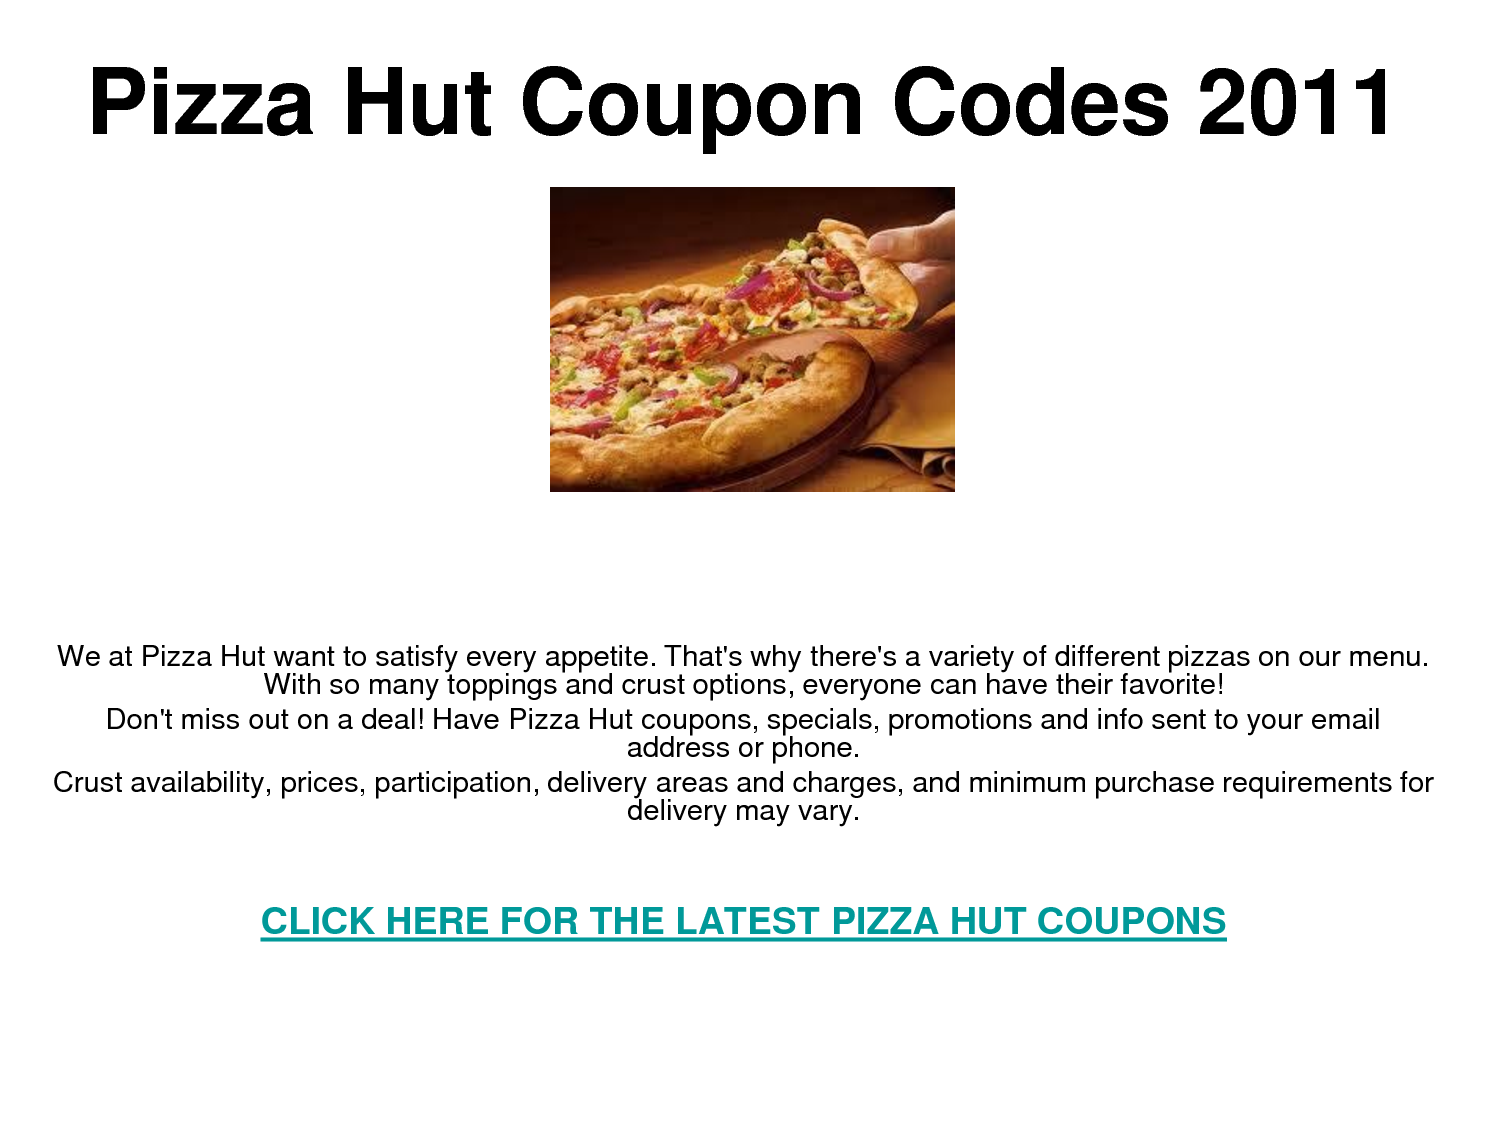 Pizza hut coupon code february 2018